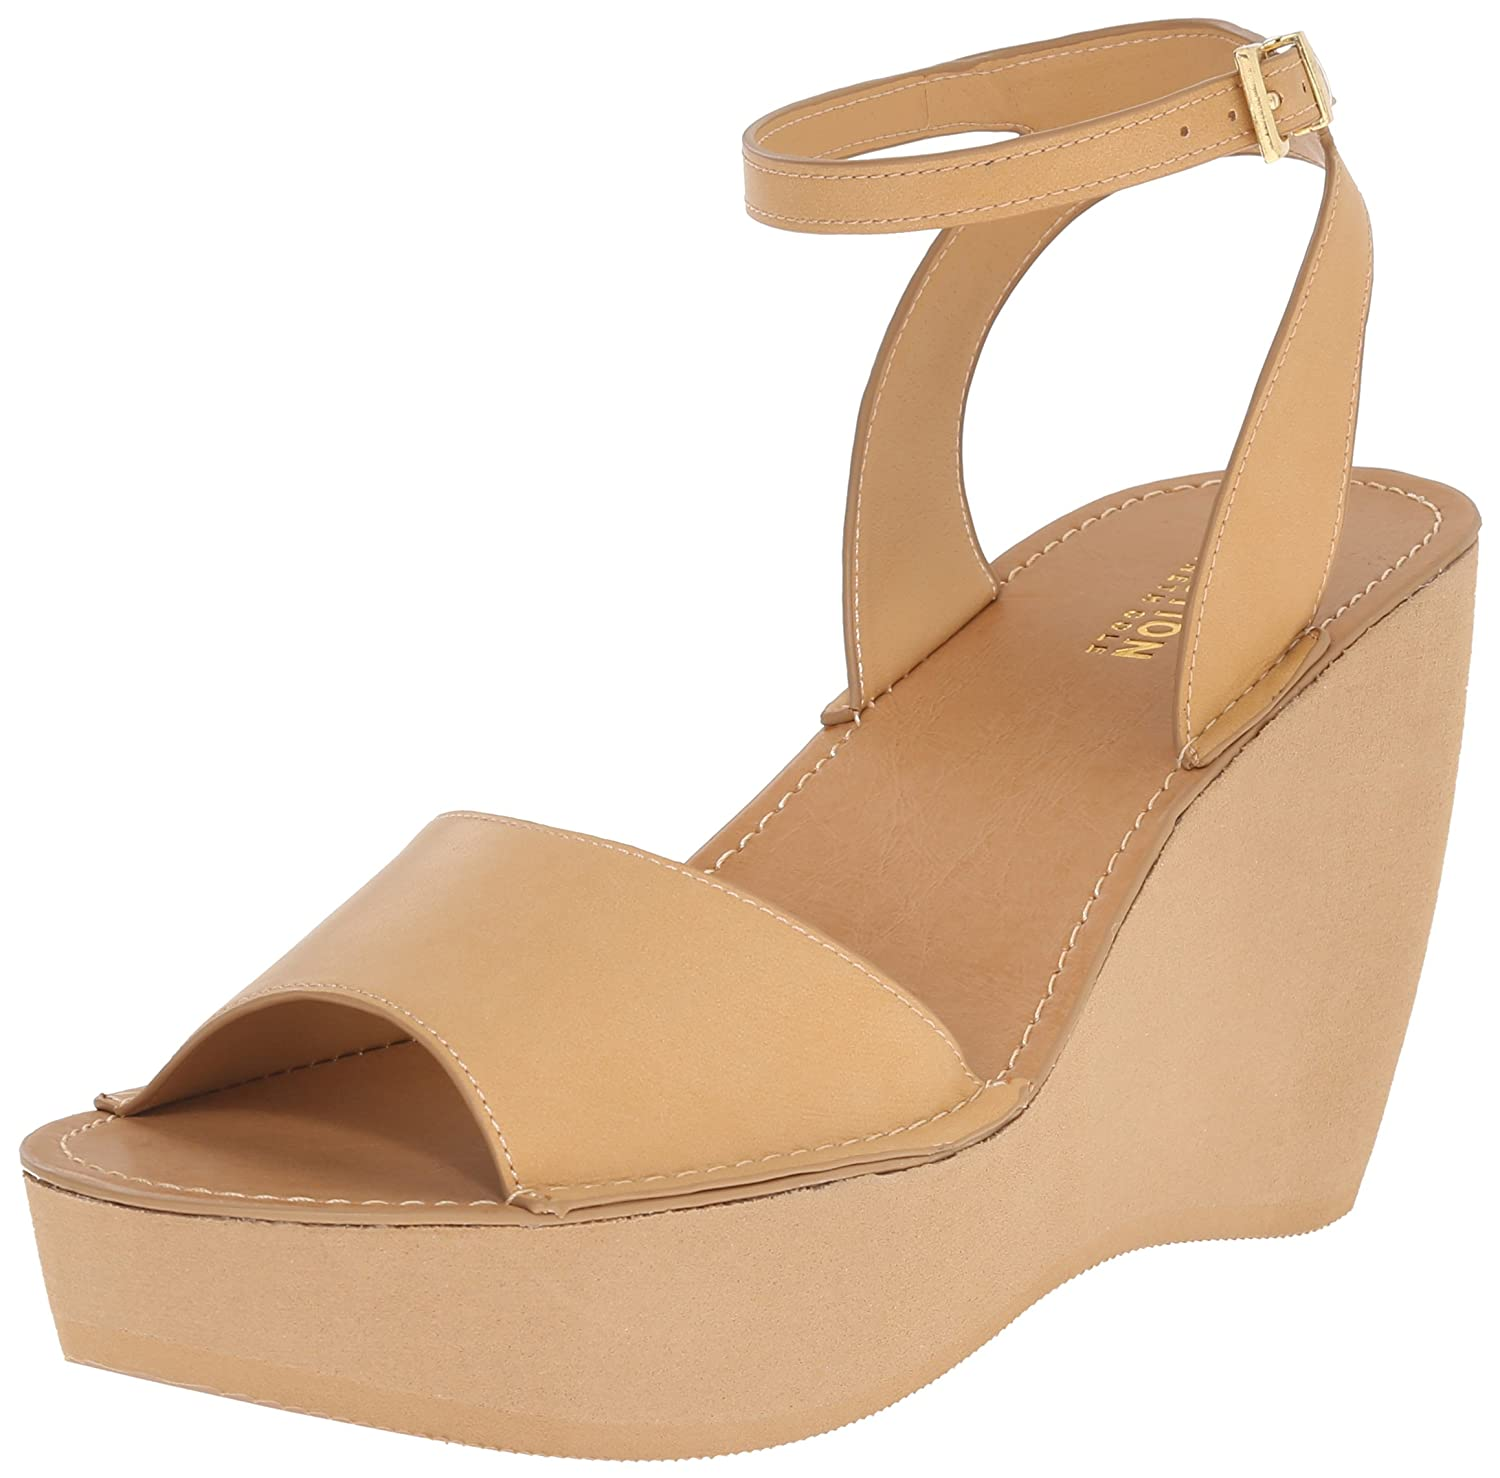 Kenneth Cole REACTION Women's Kind-LY Wedge Sandal B0135NM1R8 7 B(M) US|Tan